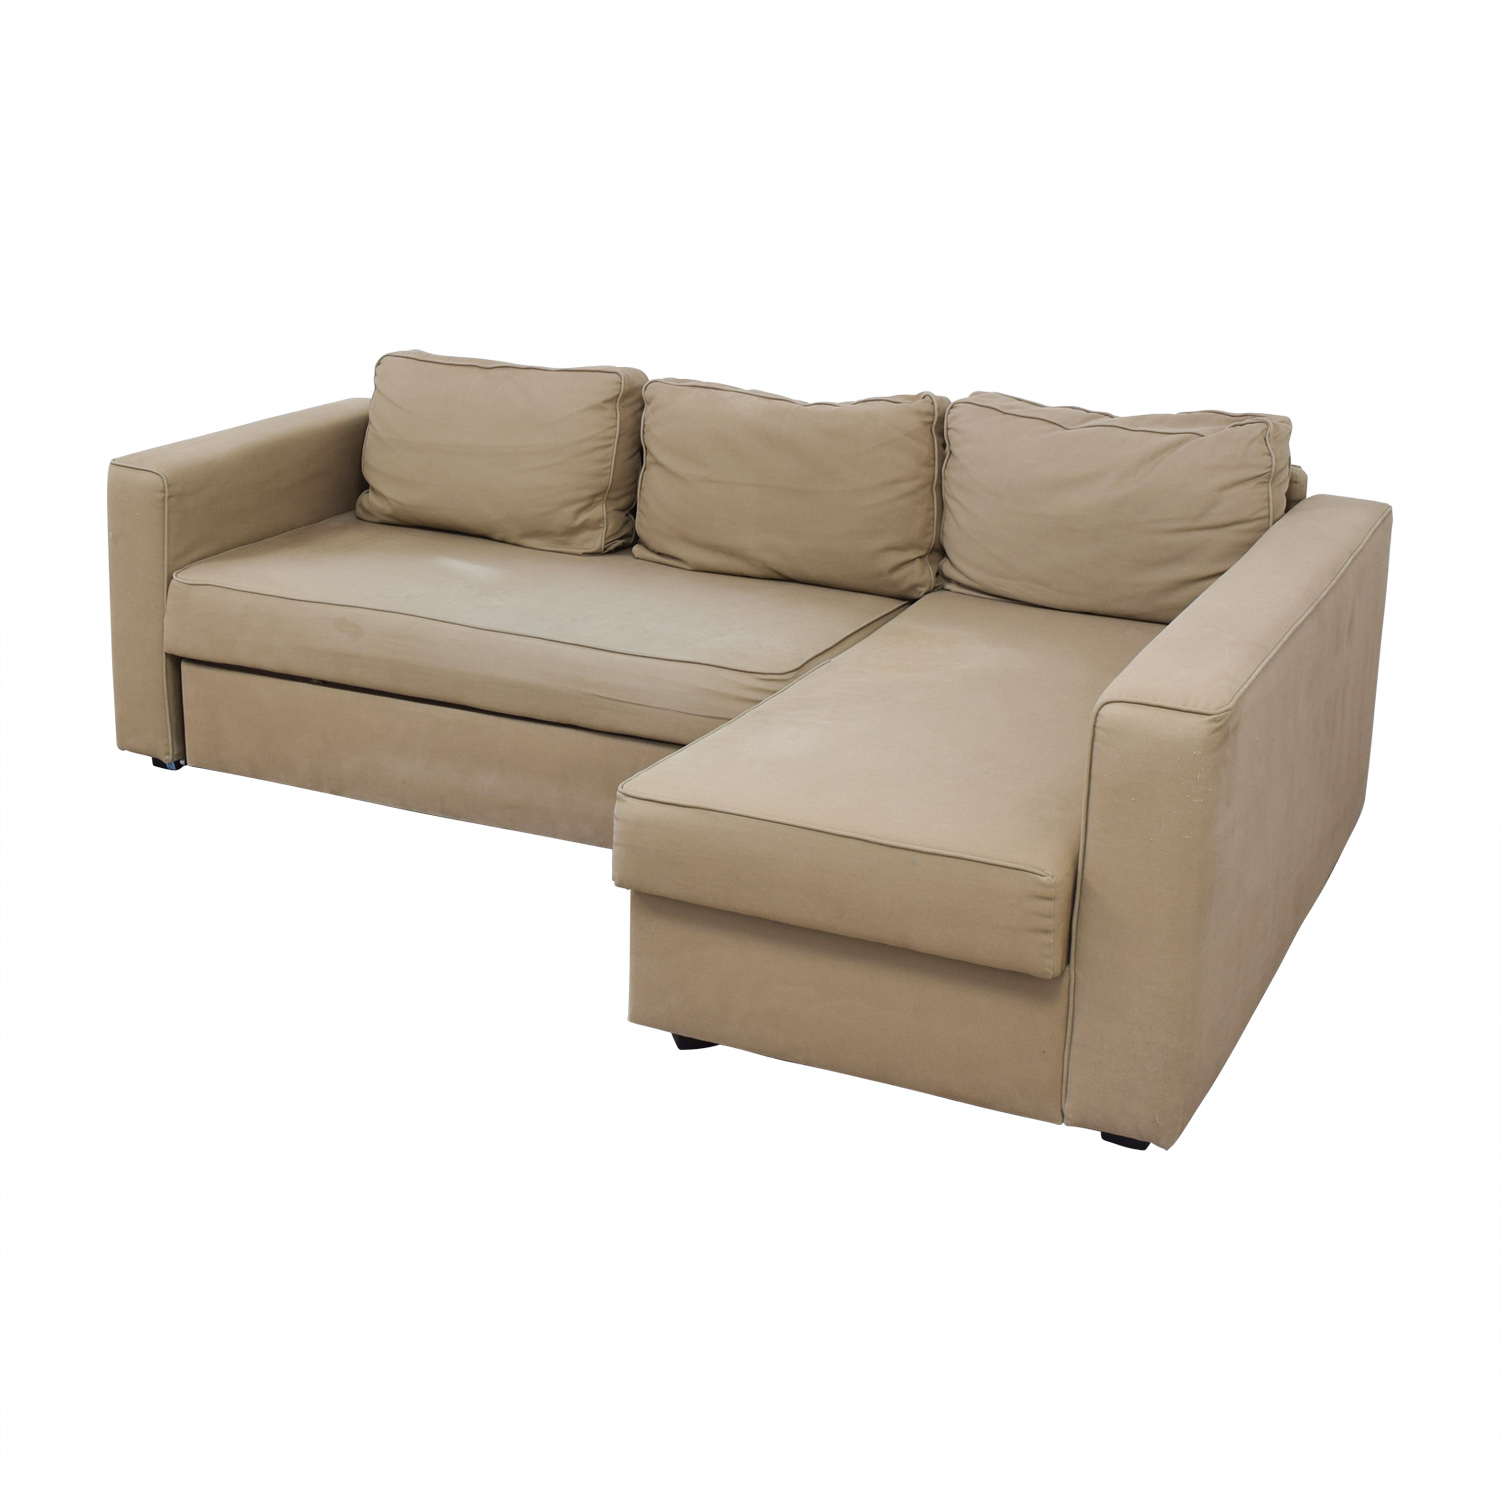 Beau ... Buy IKEA Manstad Sectional Sofa Bed With Storage IKEA ...